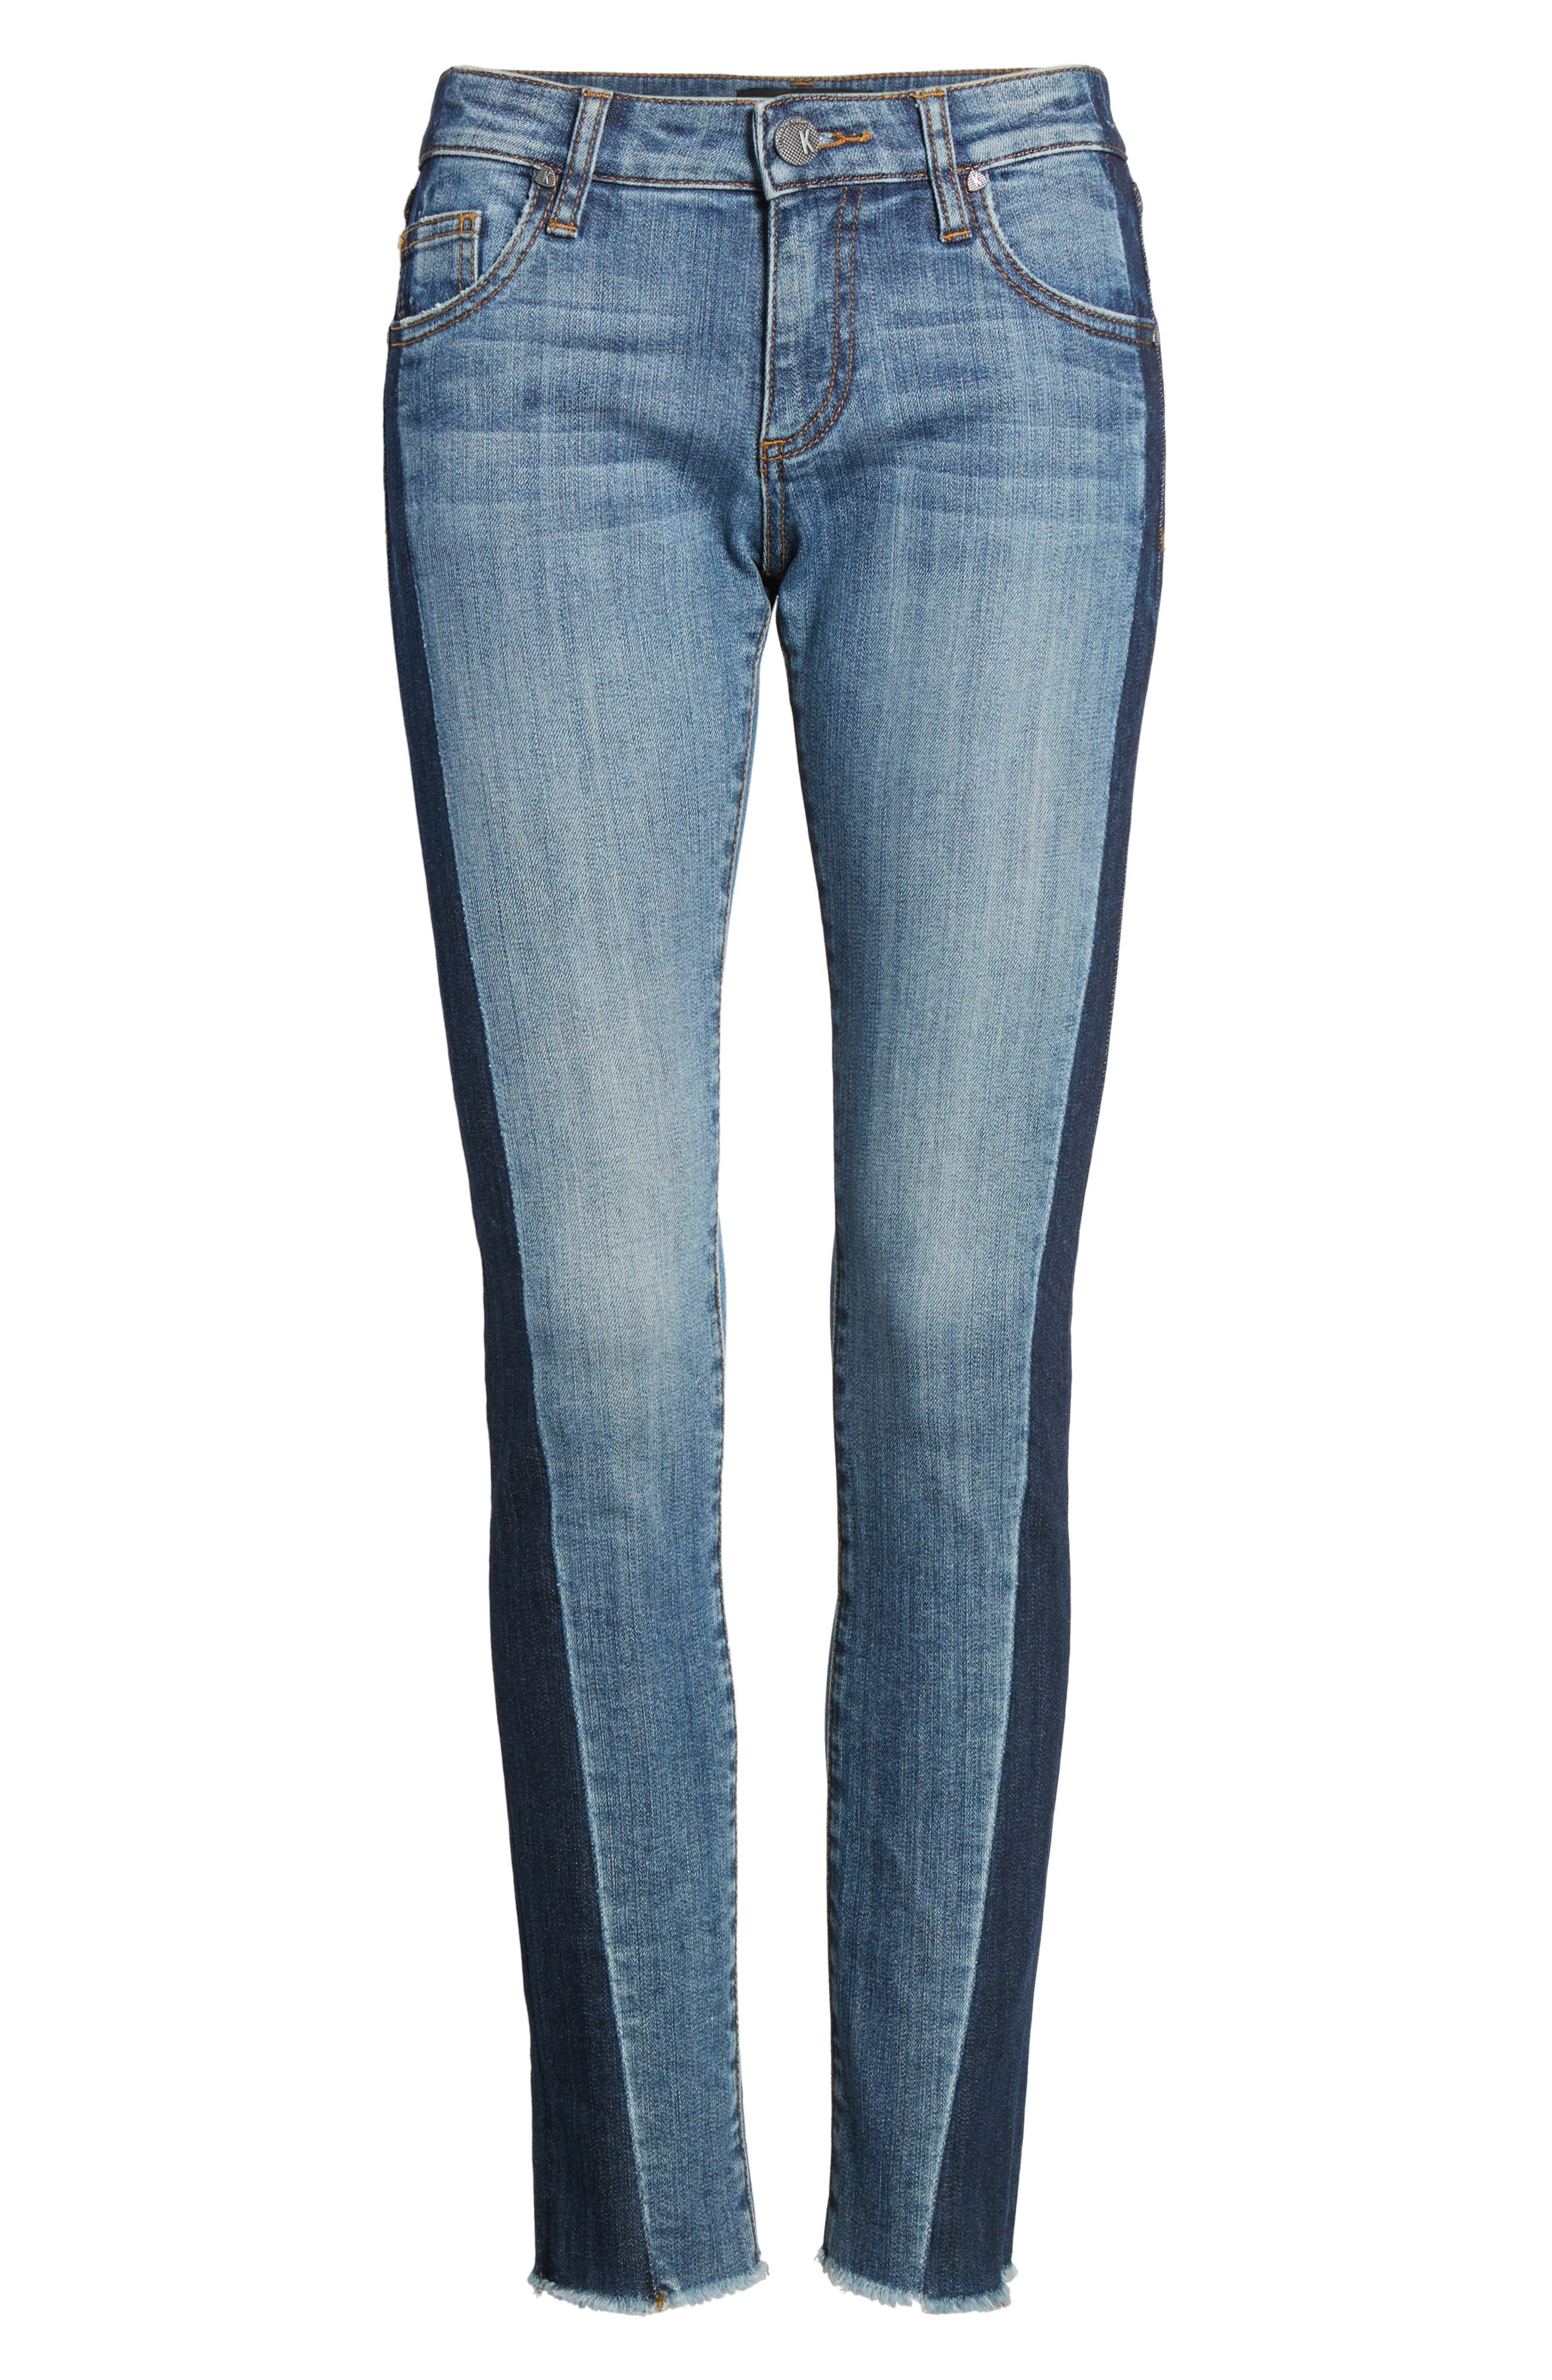 Reese Patch Jeans,                             Alternate thumbnail 7, color,                             460